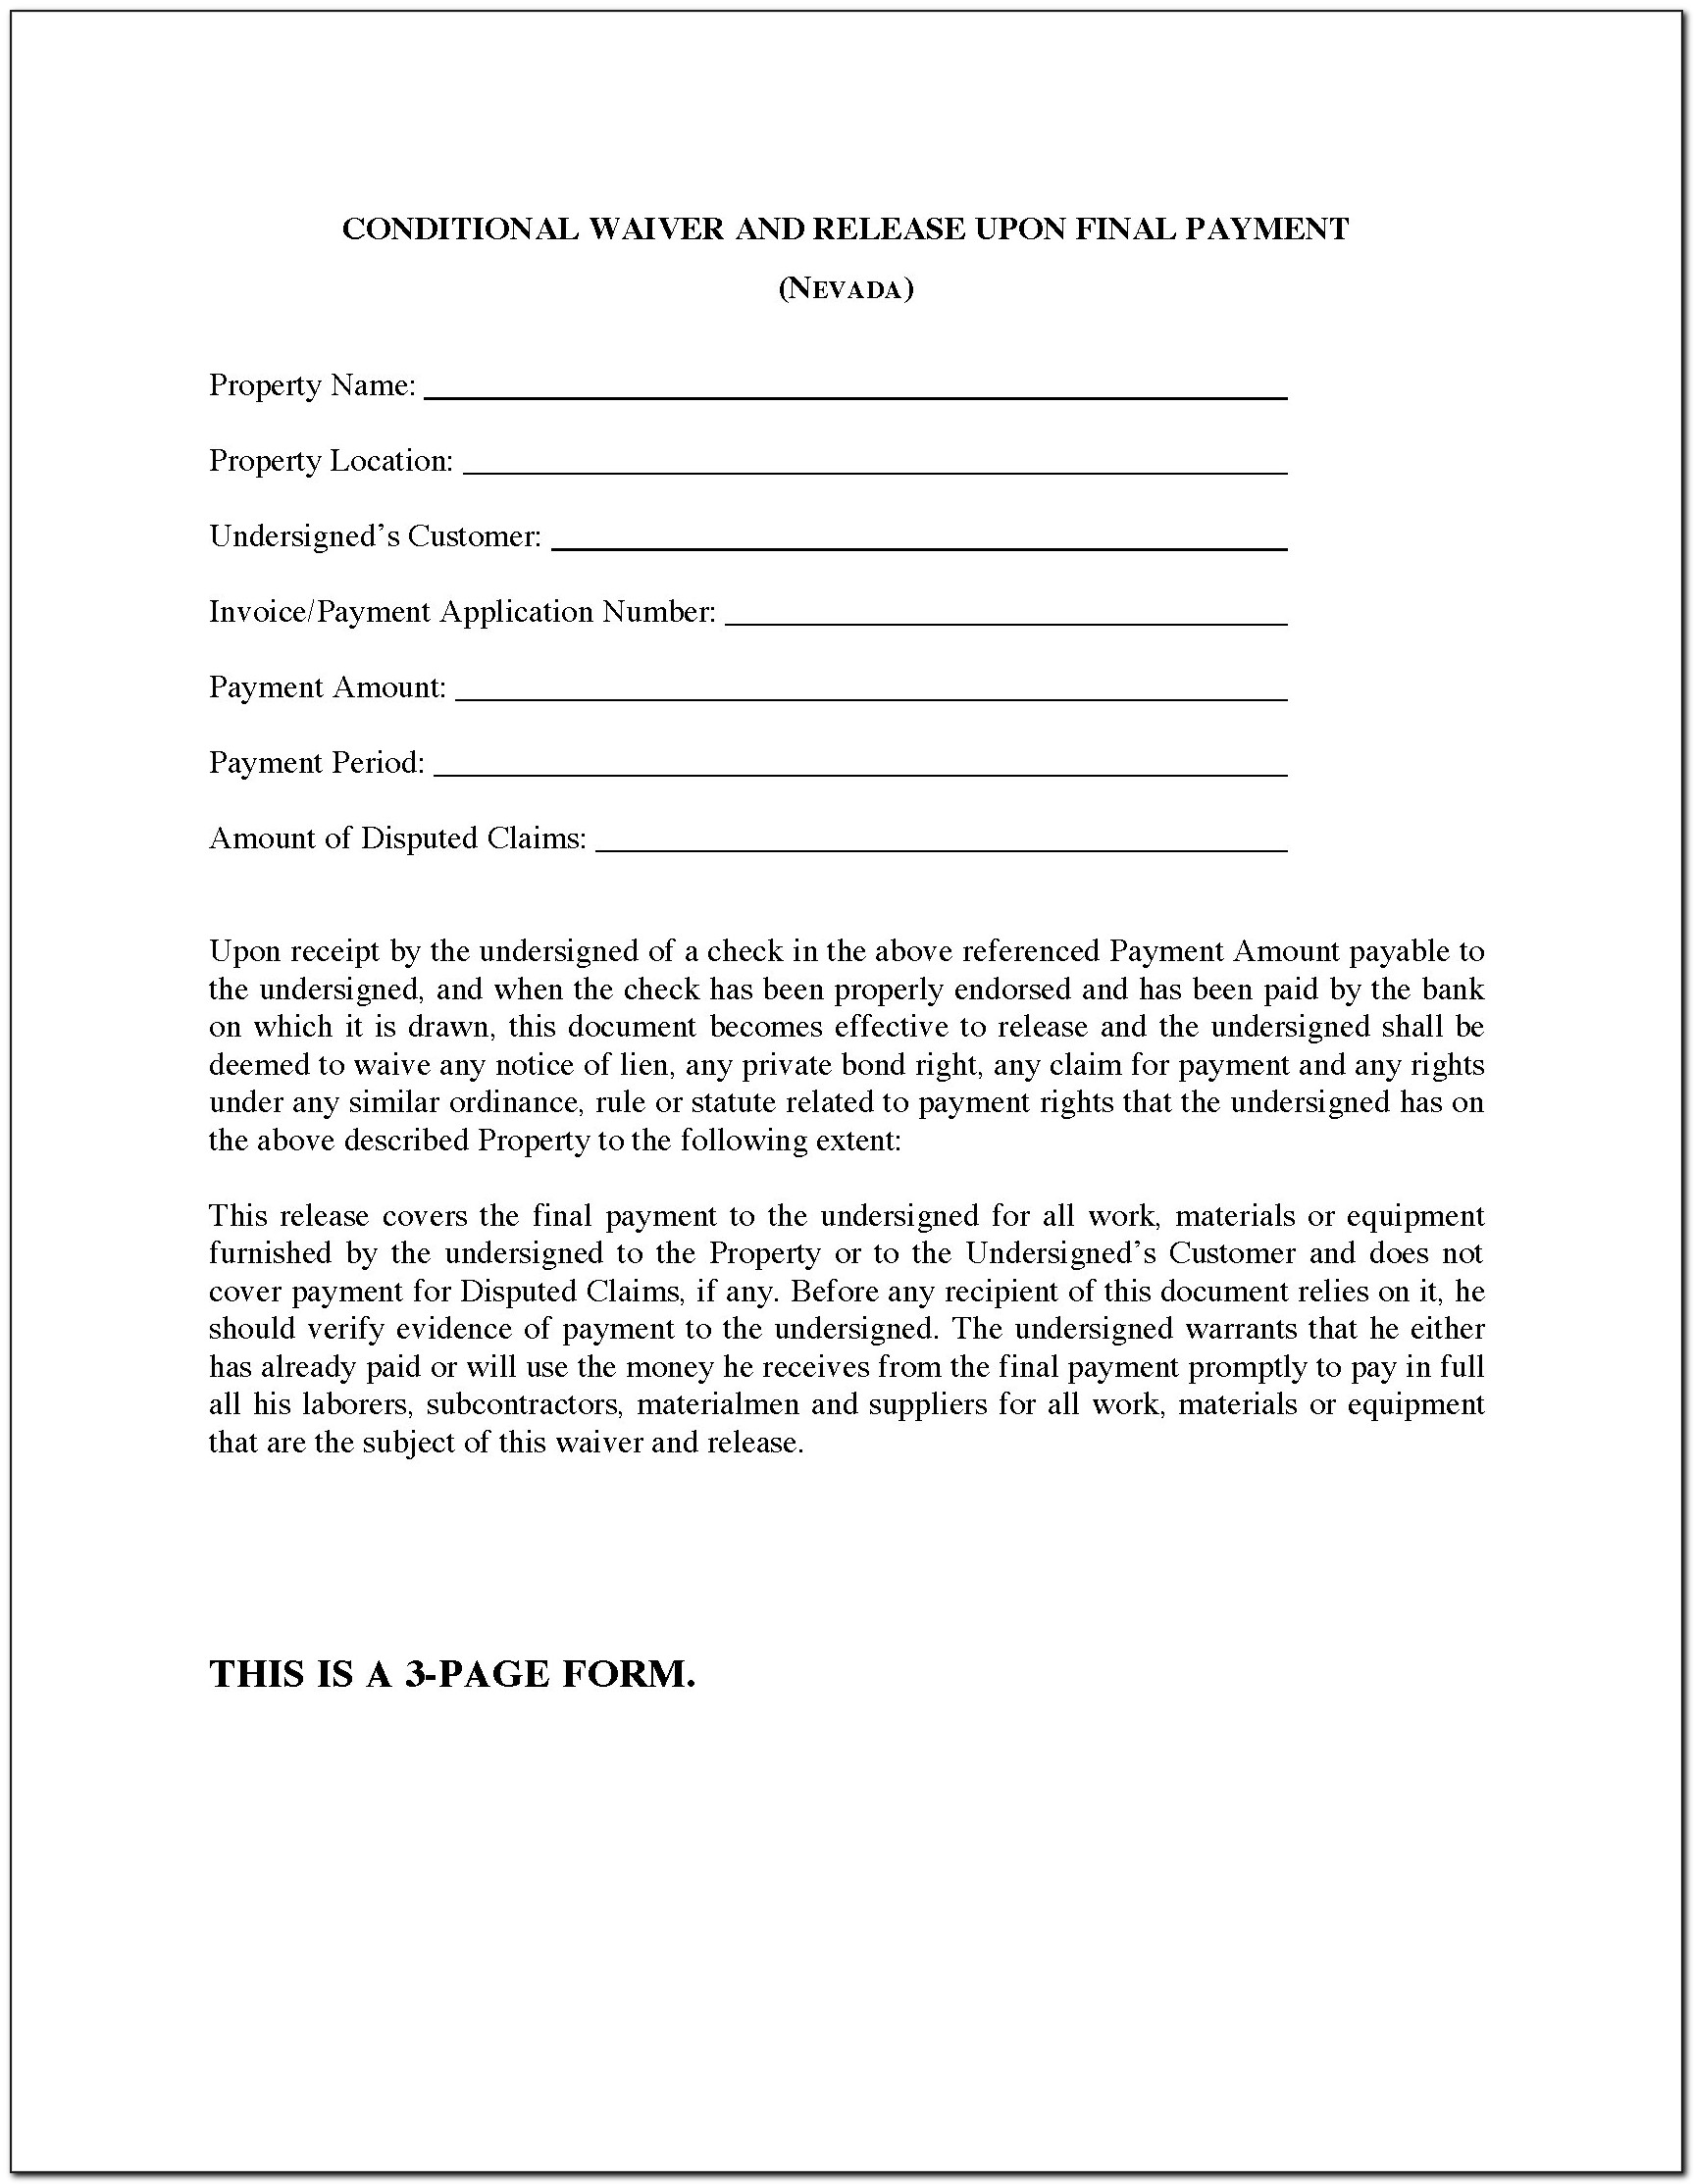 Florida Waiver And Release Of Lien Upon Final Payment Form